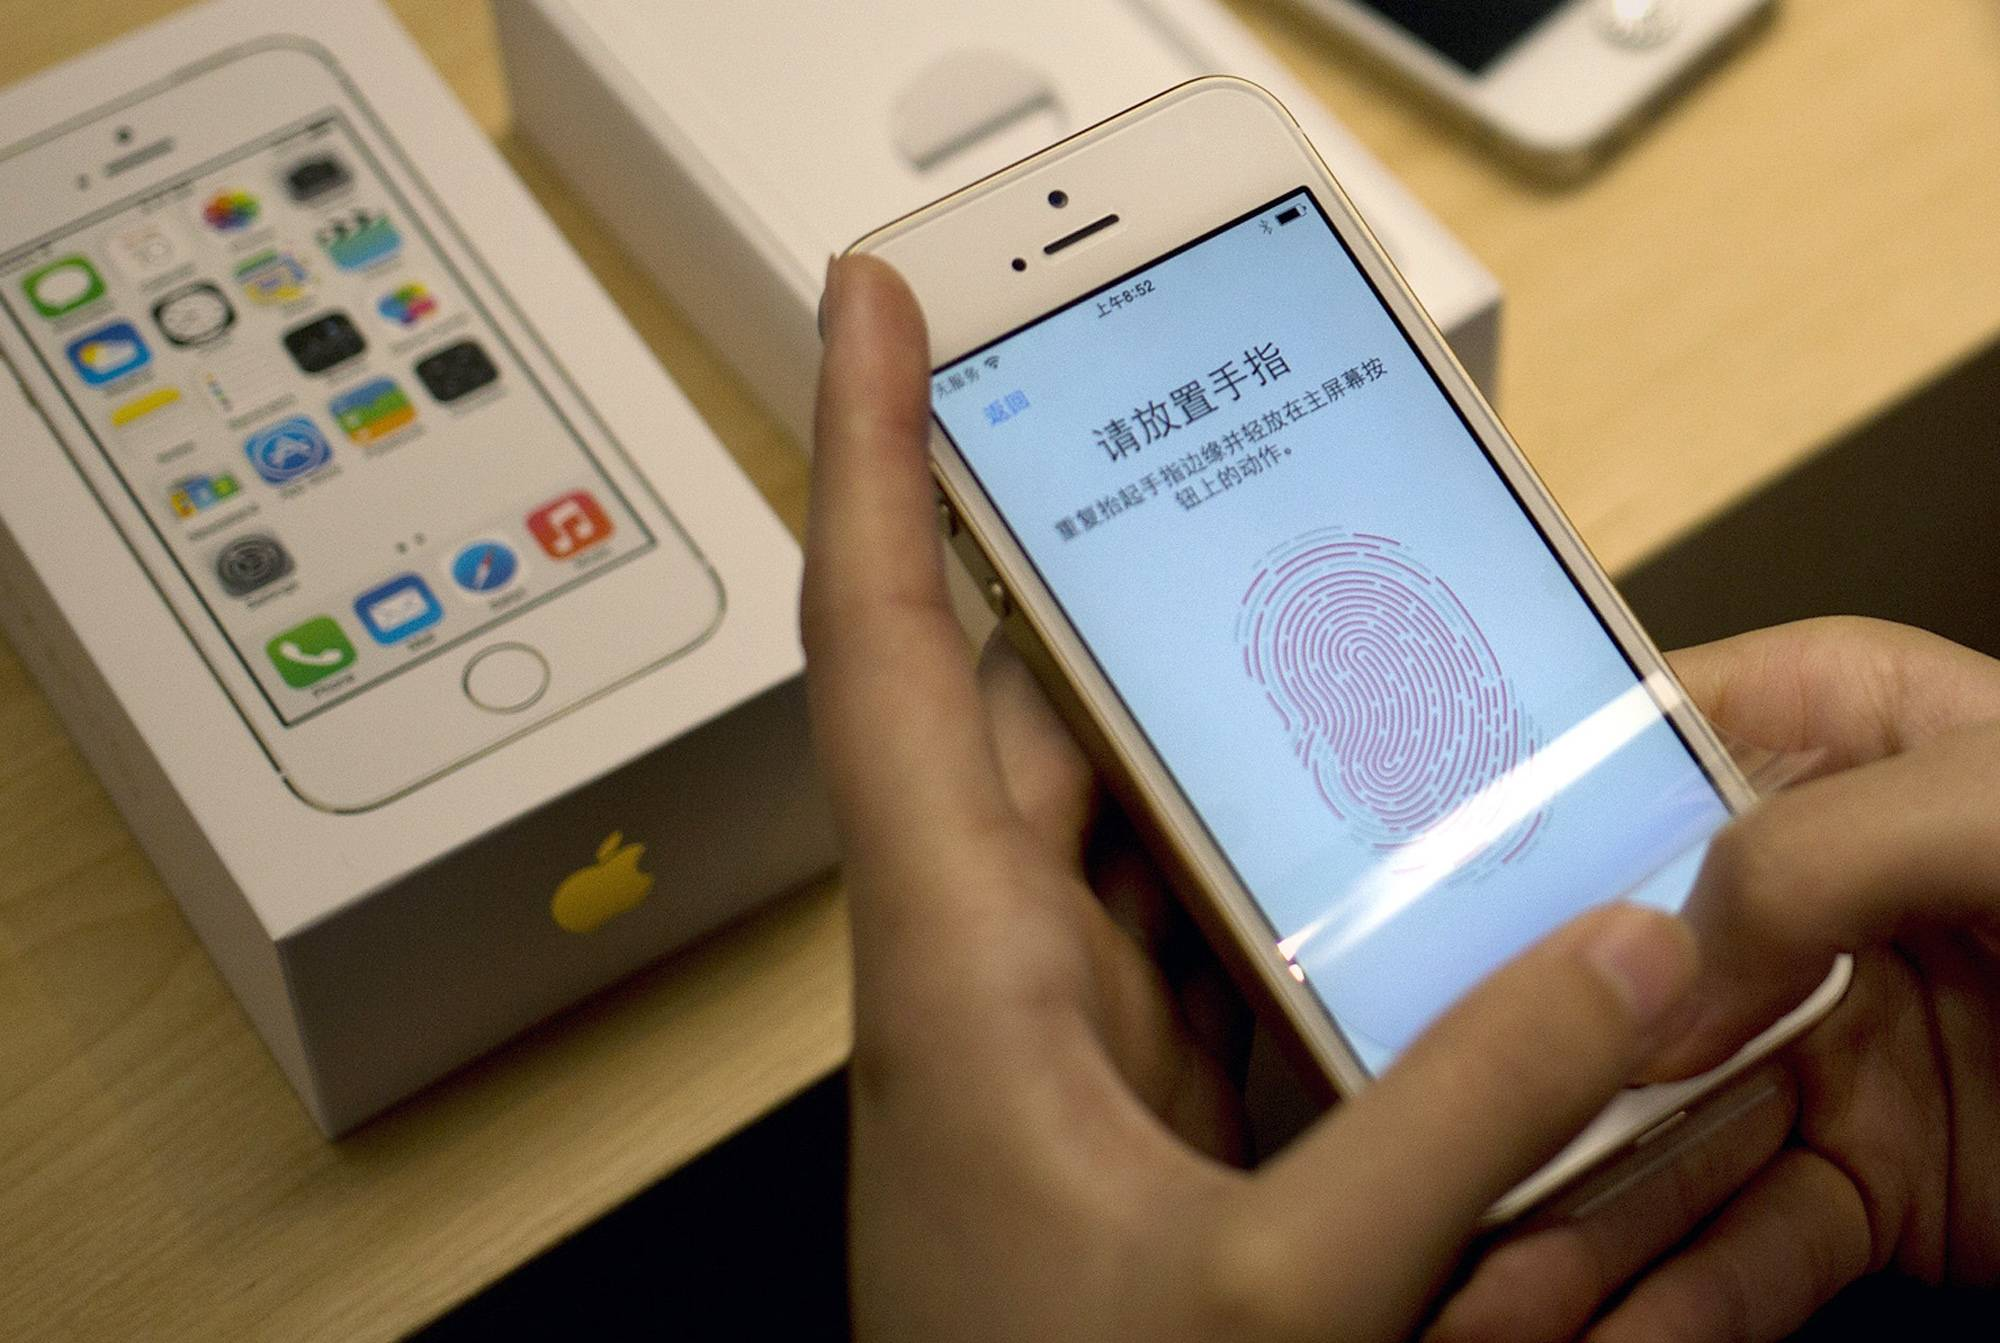 Beyond unlocking the phone, the fingerprint can be used to authenticate the purchase of apps and content within apps. This fall, Apple will begin letting outside developers use the fingerprint ID as part of their apps.